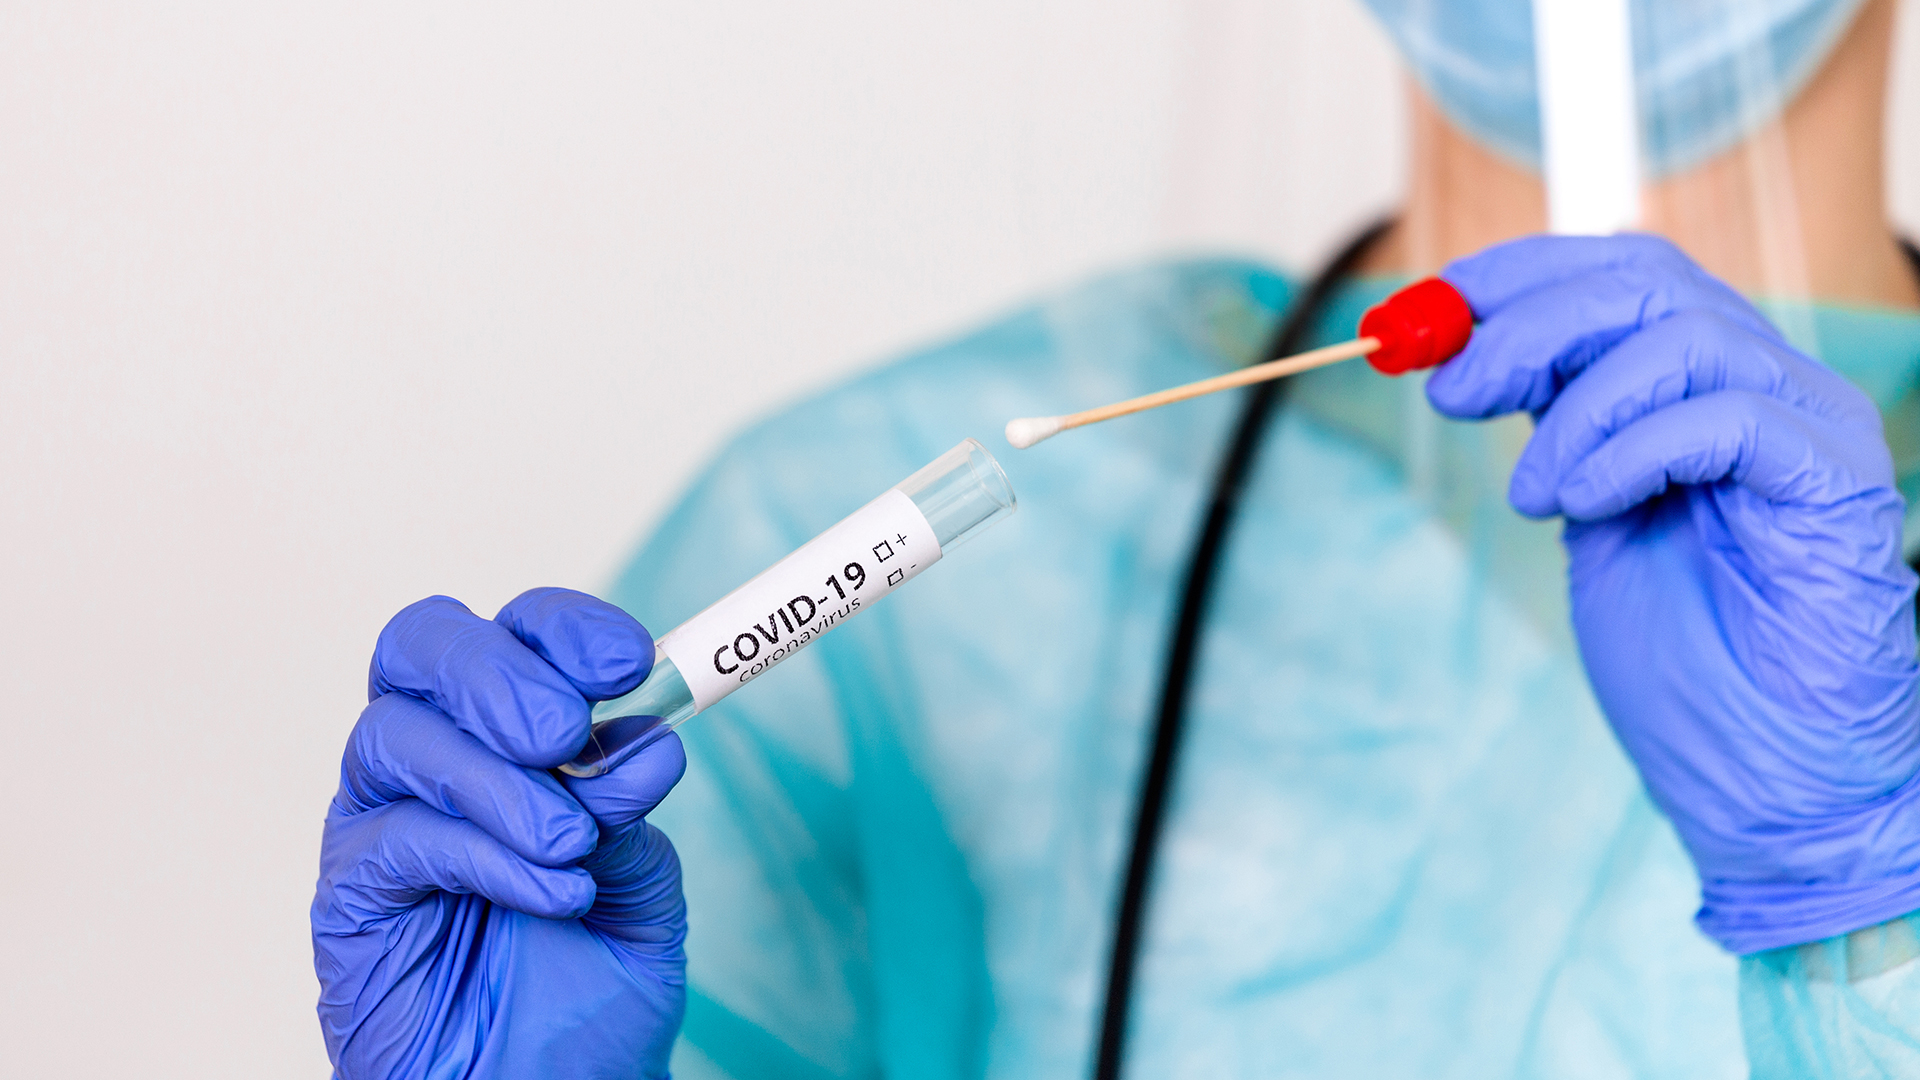 You went to a get-together and now you feel sick, or you know someone who got COVID-19. What constitutes an exposure, and when and why should you get tested for COVID-19? Our expert provides all the information you need to know.